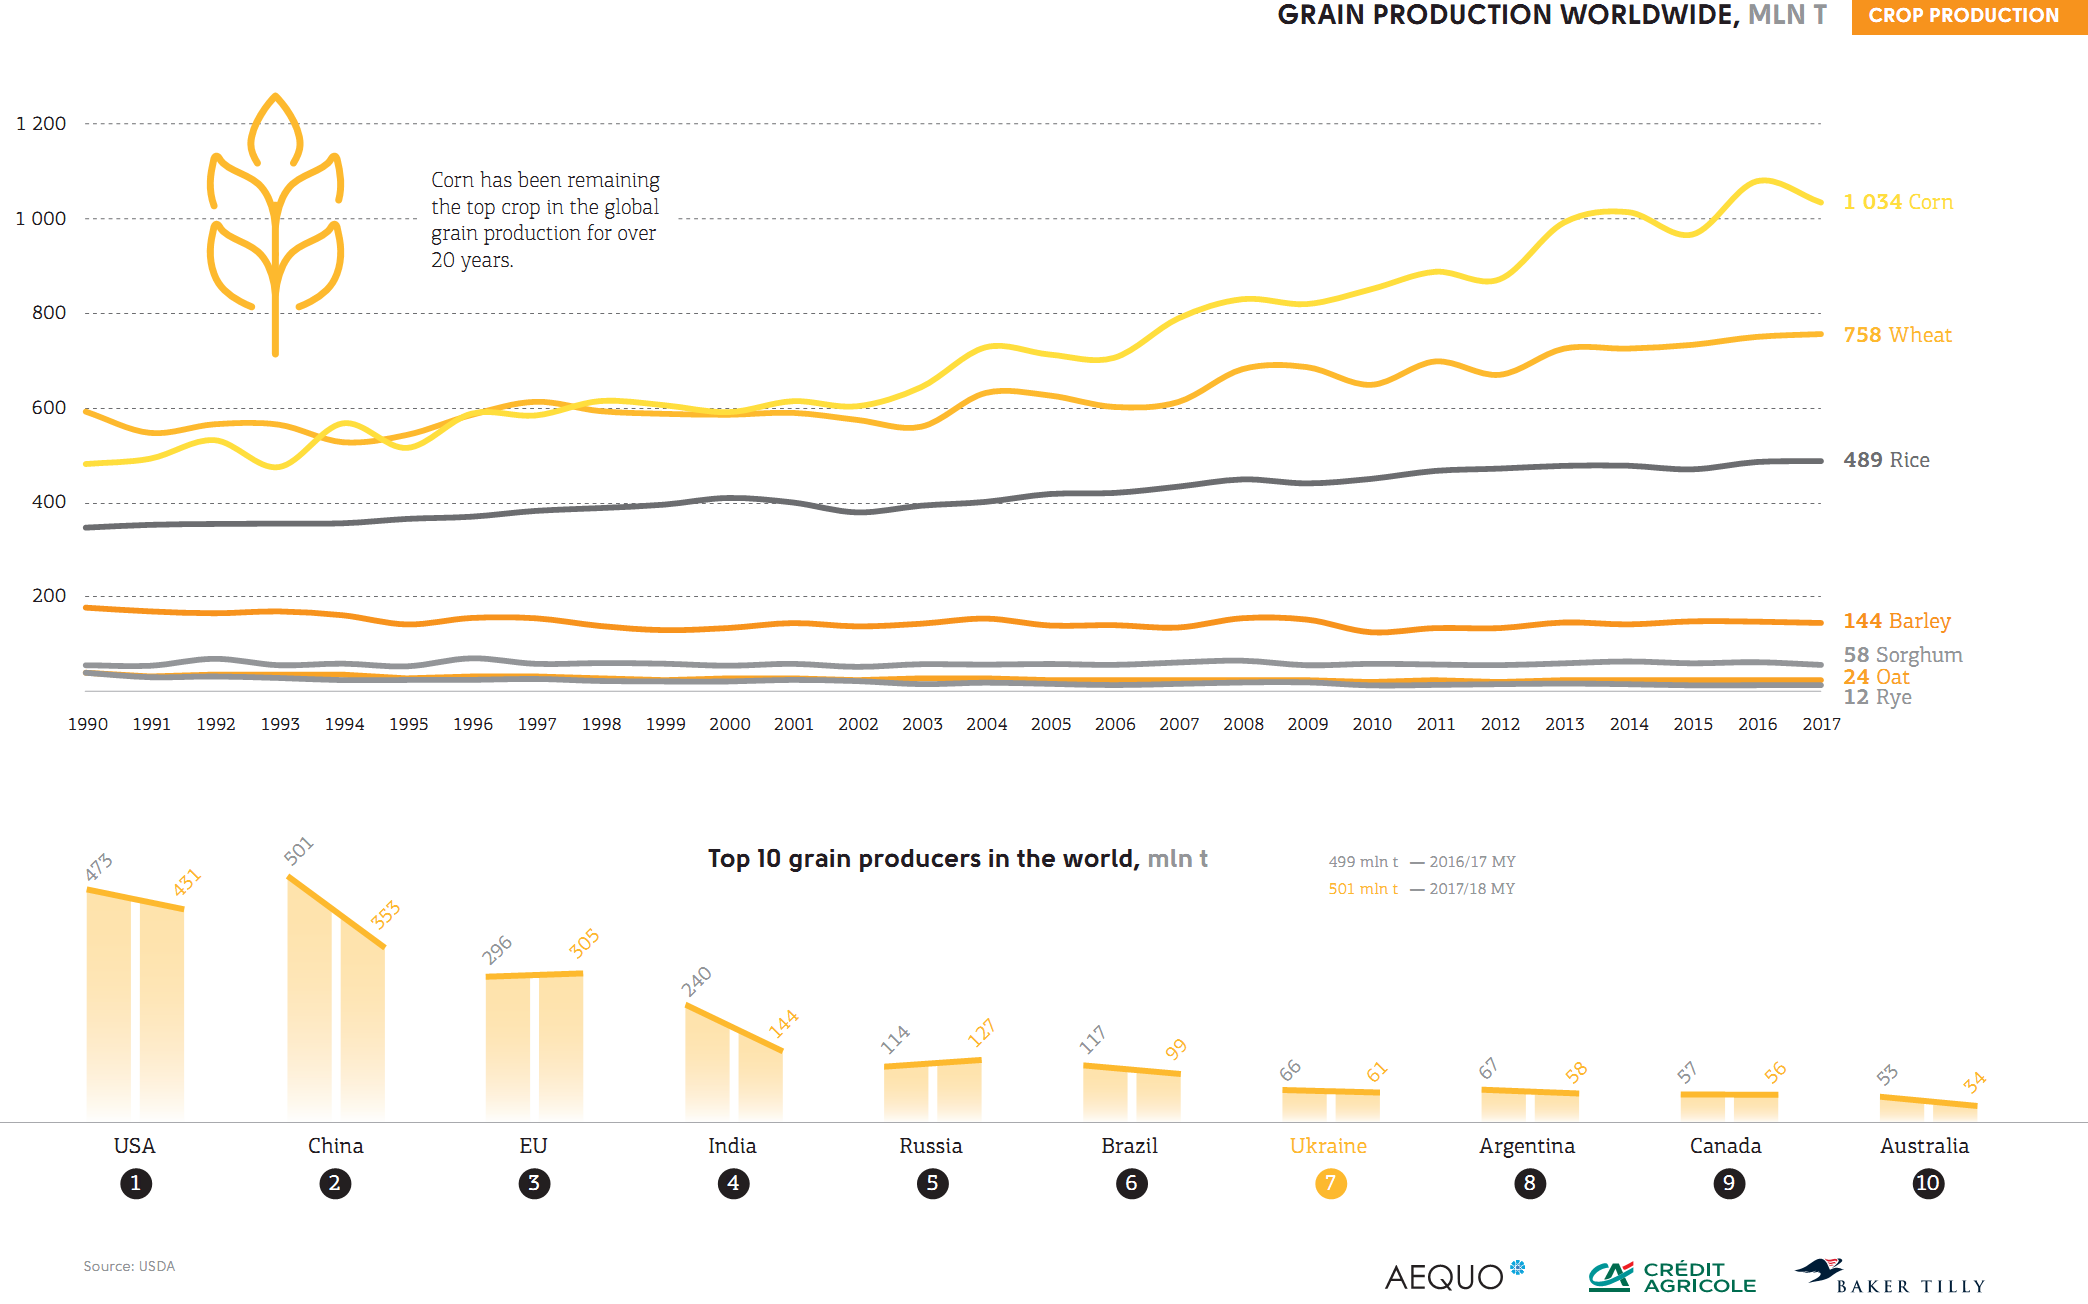 Grain production worldwide (click for full resolution)